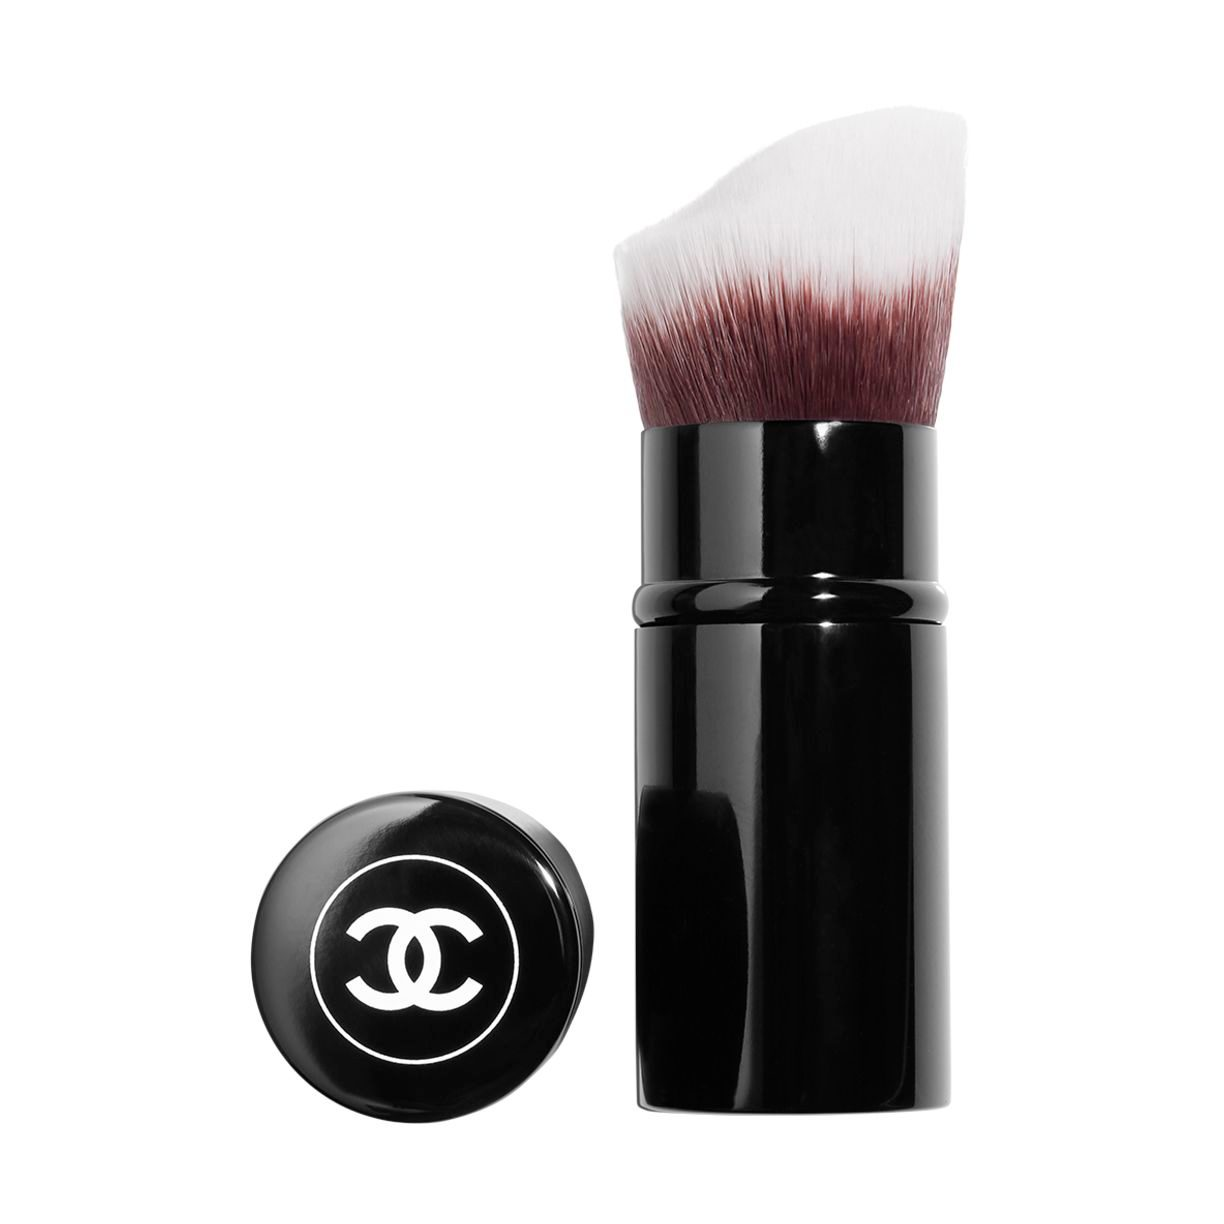 PINCEAU FOND DE TEINT RÉTRACTABLE PINCEL RETRÁCTIL PARA BASE DE MAQUILLAJE